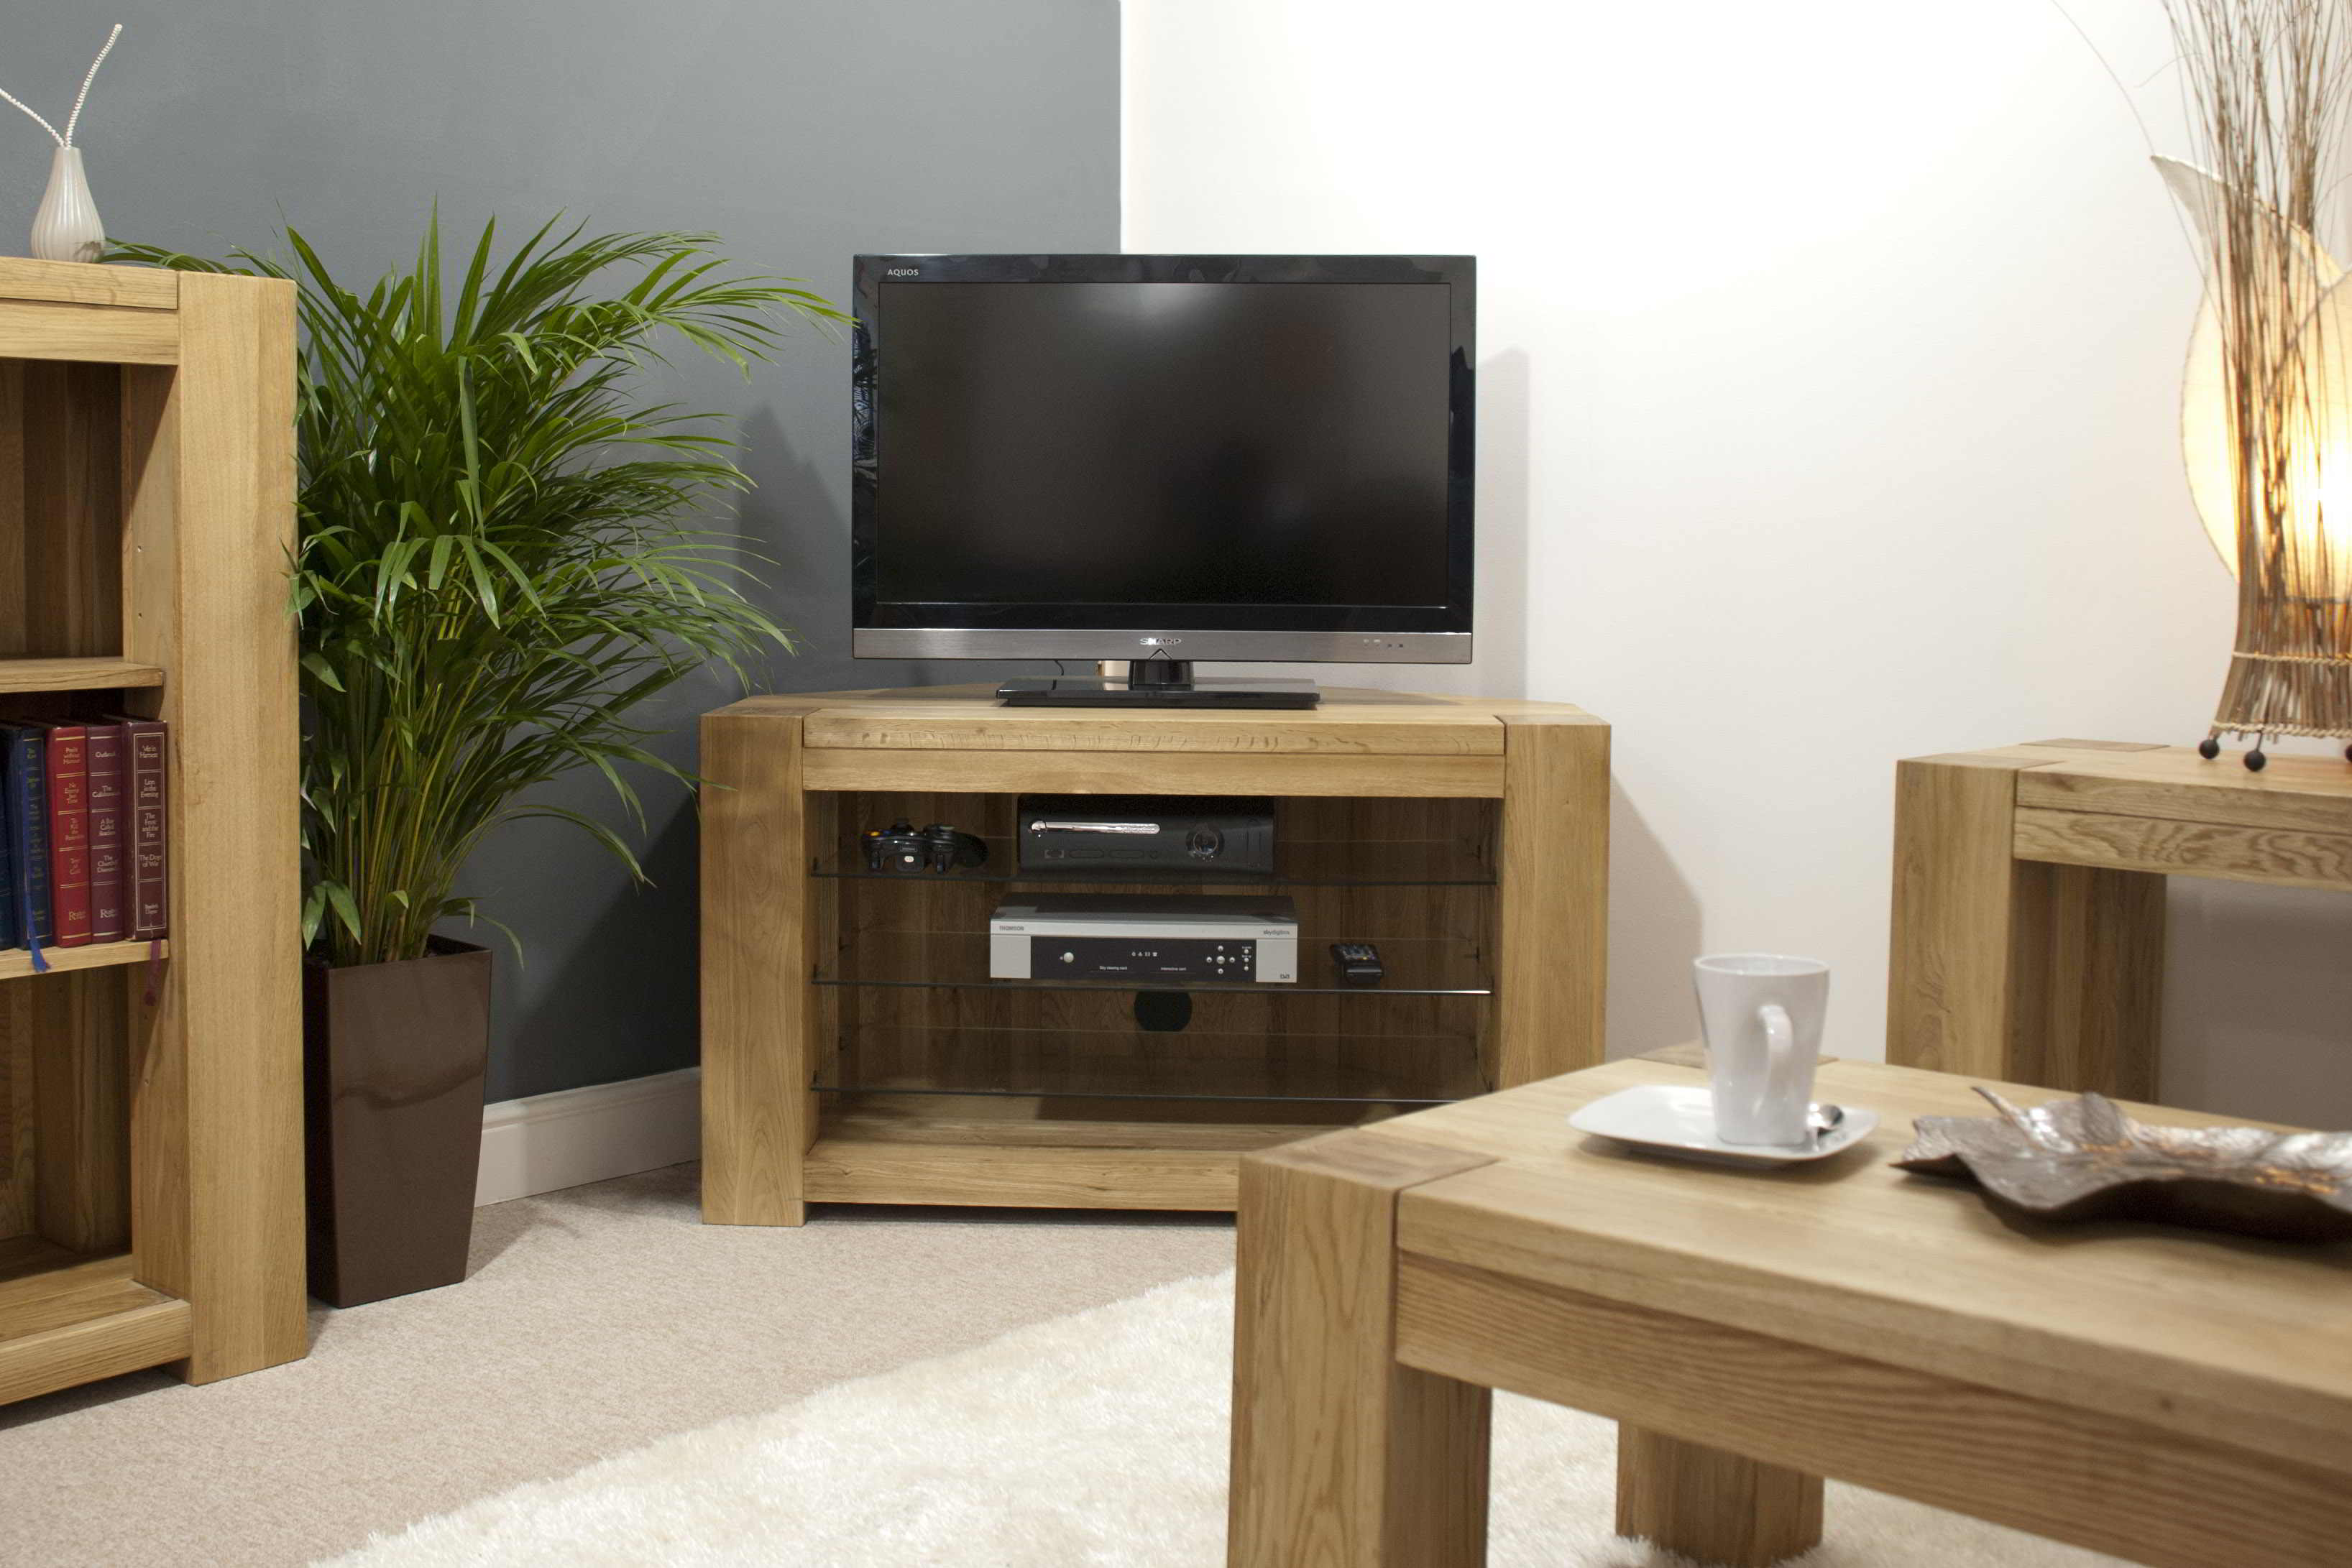 Padova solid oak furniture corner television cabinet stand for Living room designs with oak furniture